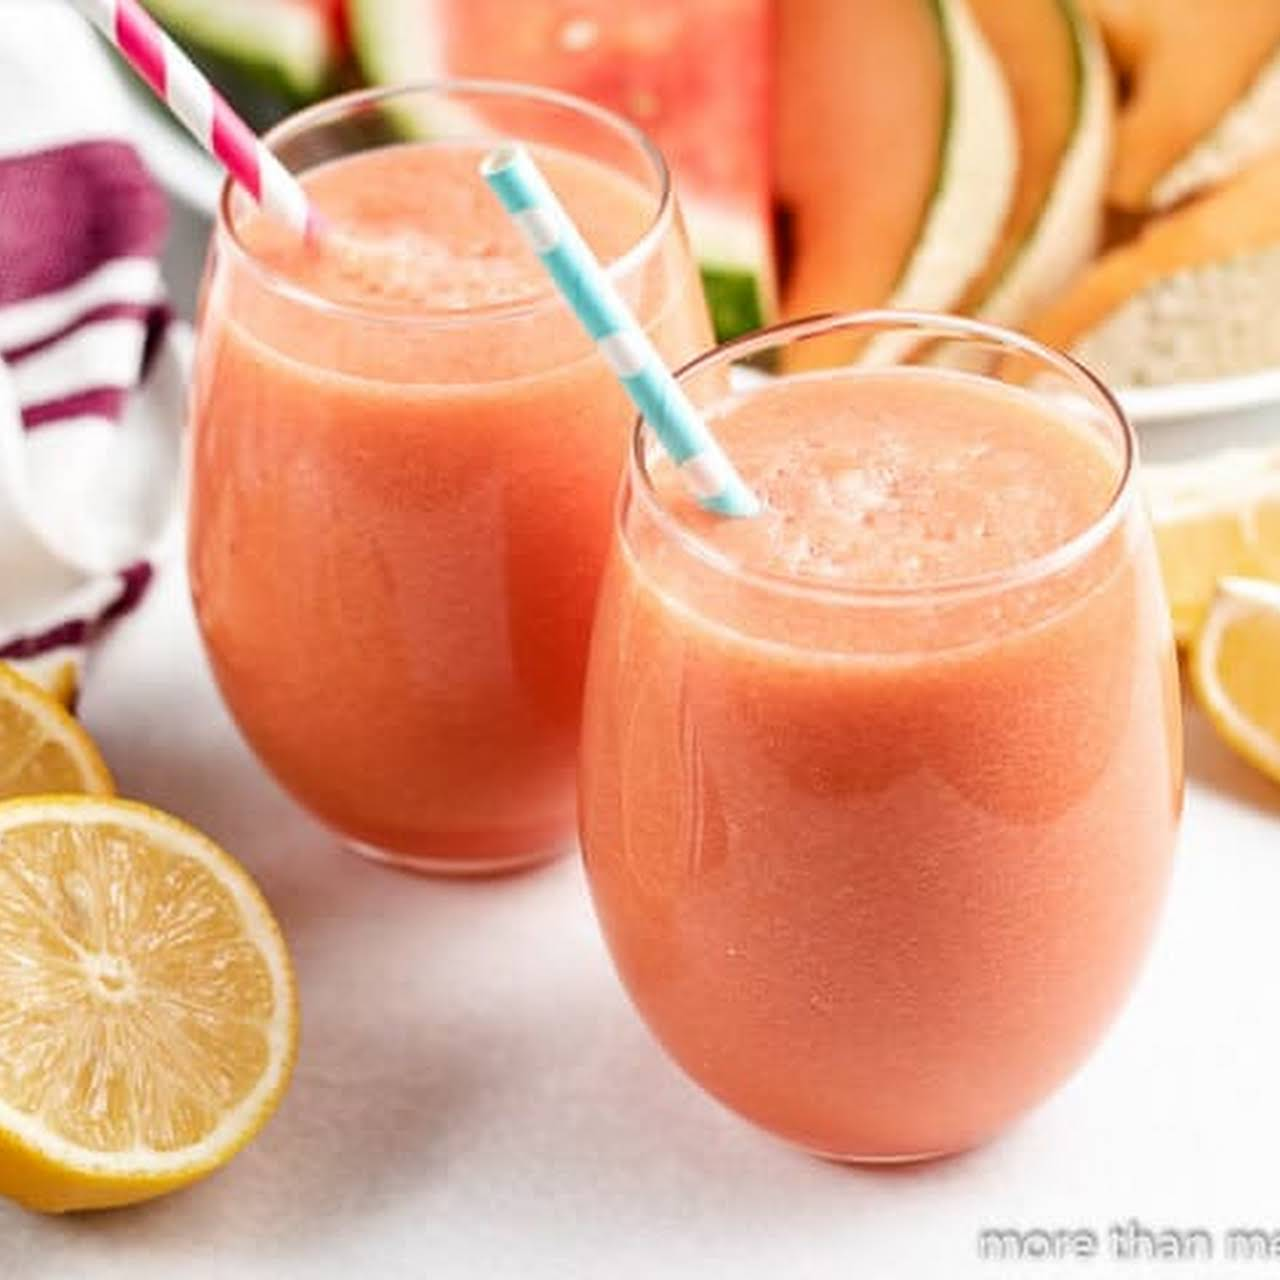 10 Best Cantaloupe Juice Recipes Yummly The musk melon pieces are so juicy while chewing, i just love this feeling. watermelon cantaloupe juice